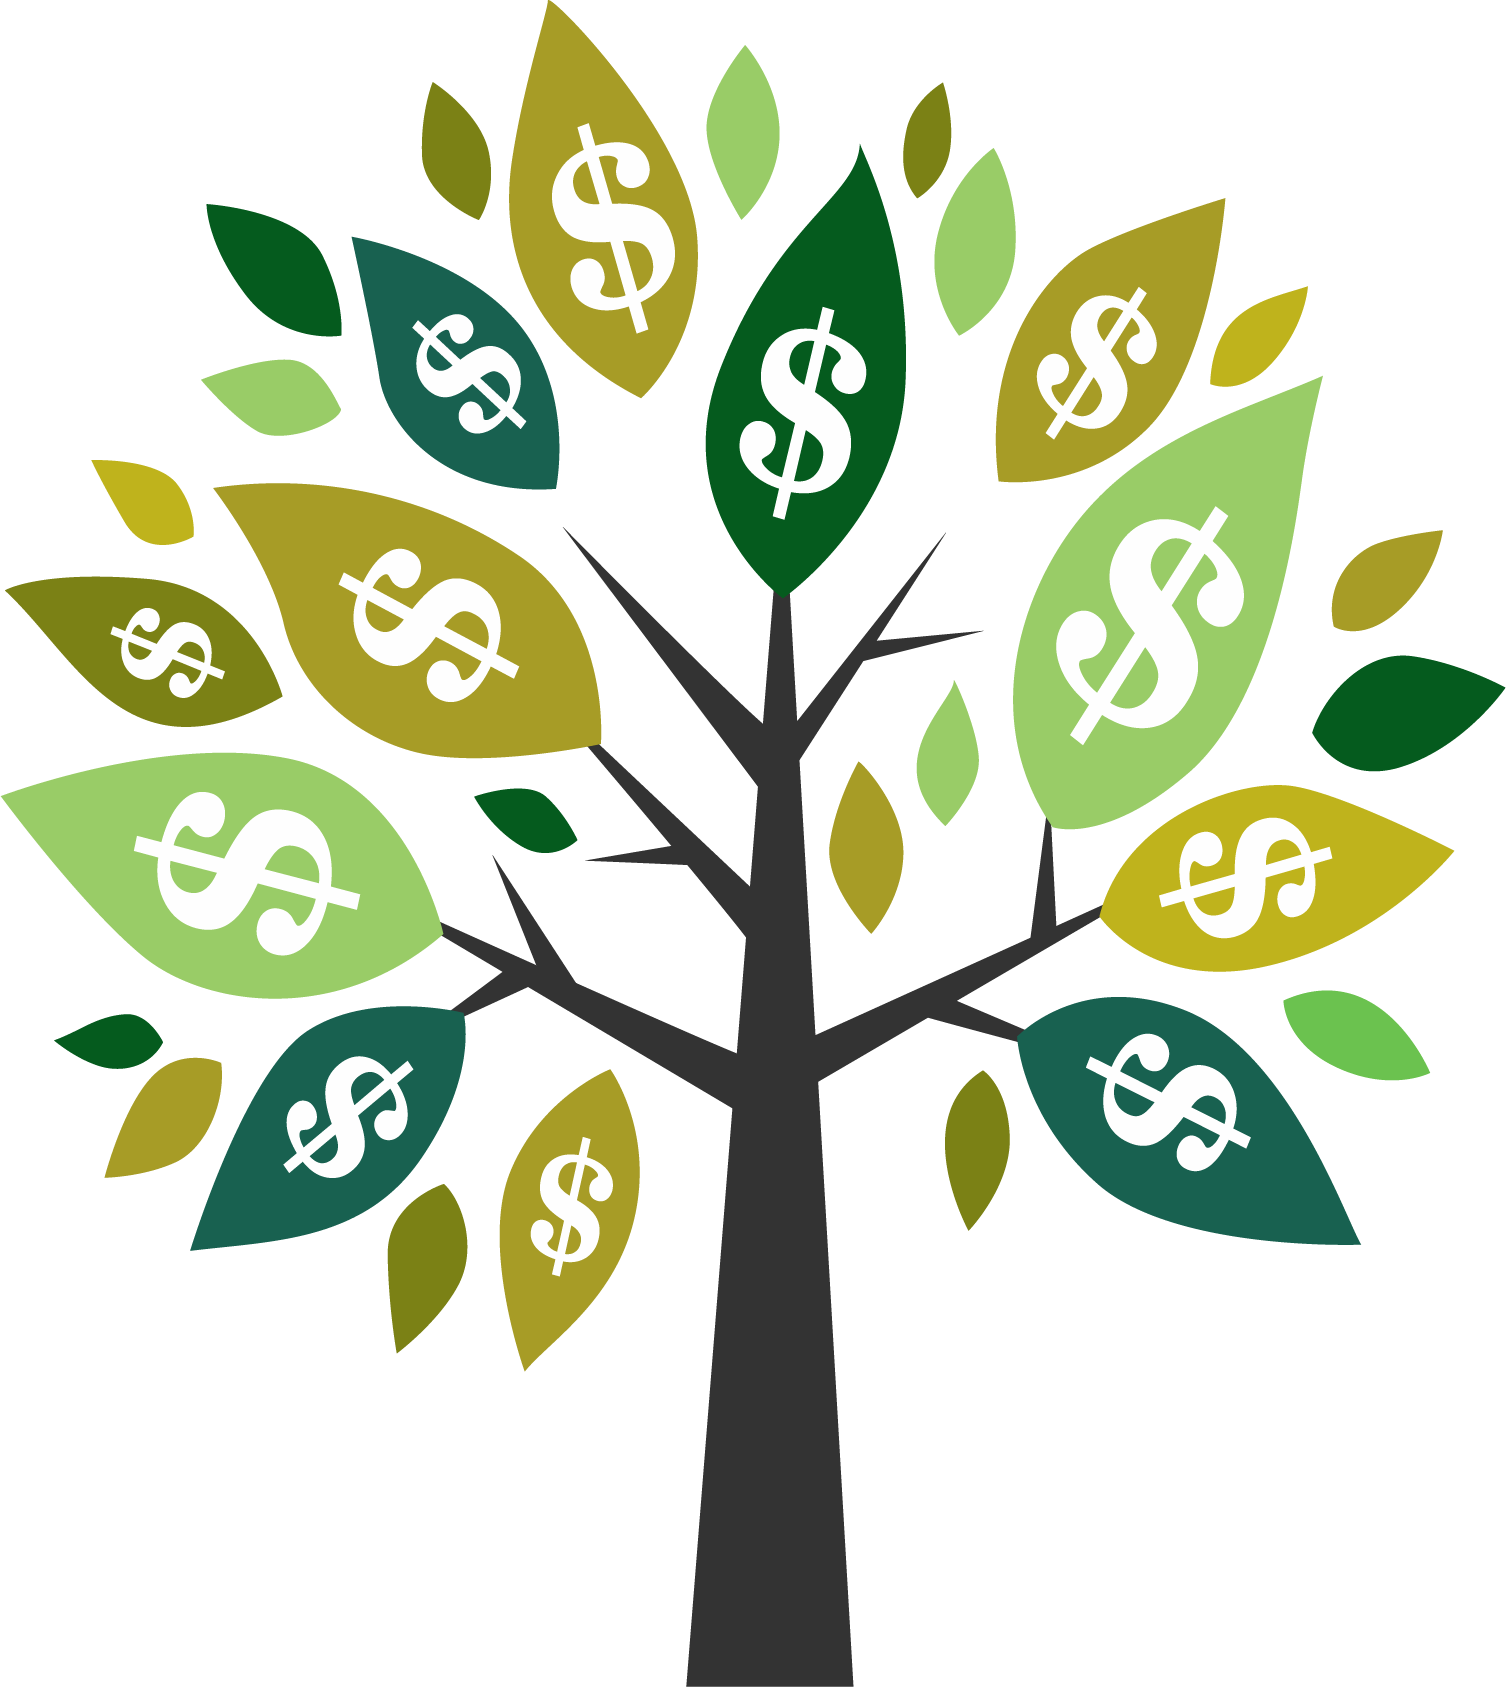 Money tree png. Dollar sign united states